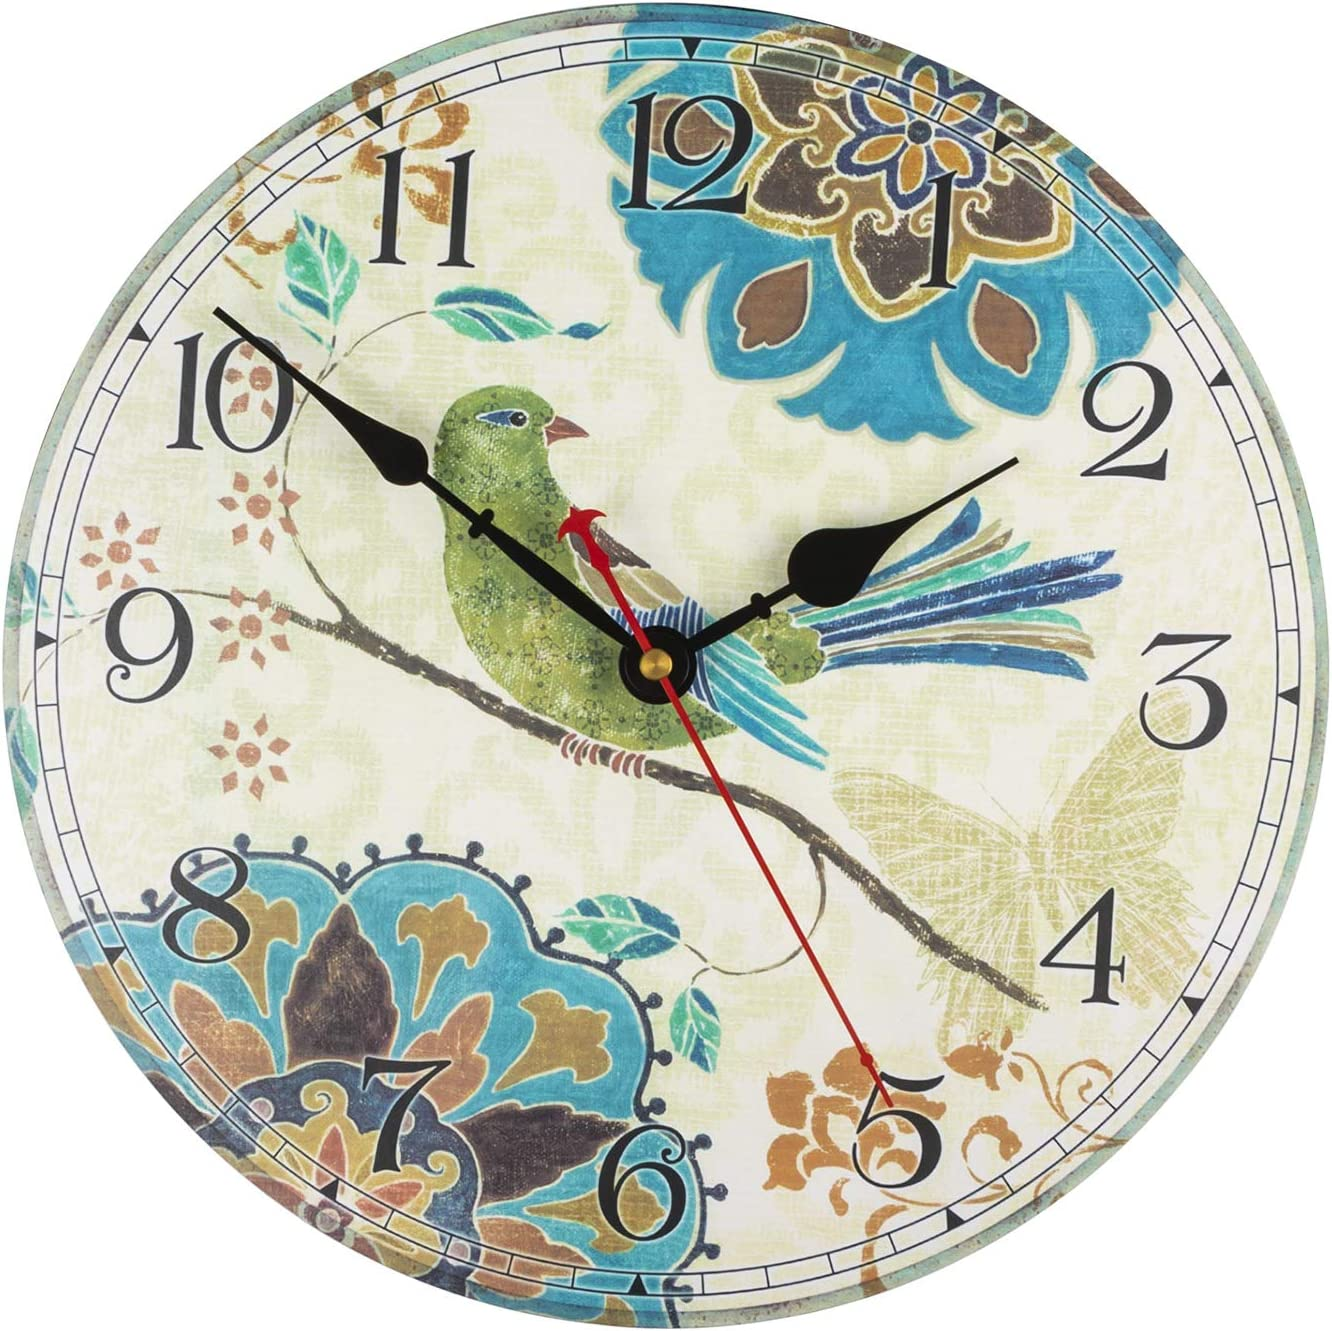 "Amazon.com: KI Store Silent Wall Clocks Non Ticking Decorative Clock for  Bedroom Living Room Kitchen Wood Cabin Farmhouse Round Wall Decor (12"",  Bird): Home & Kitchen"